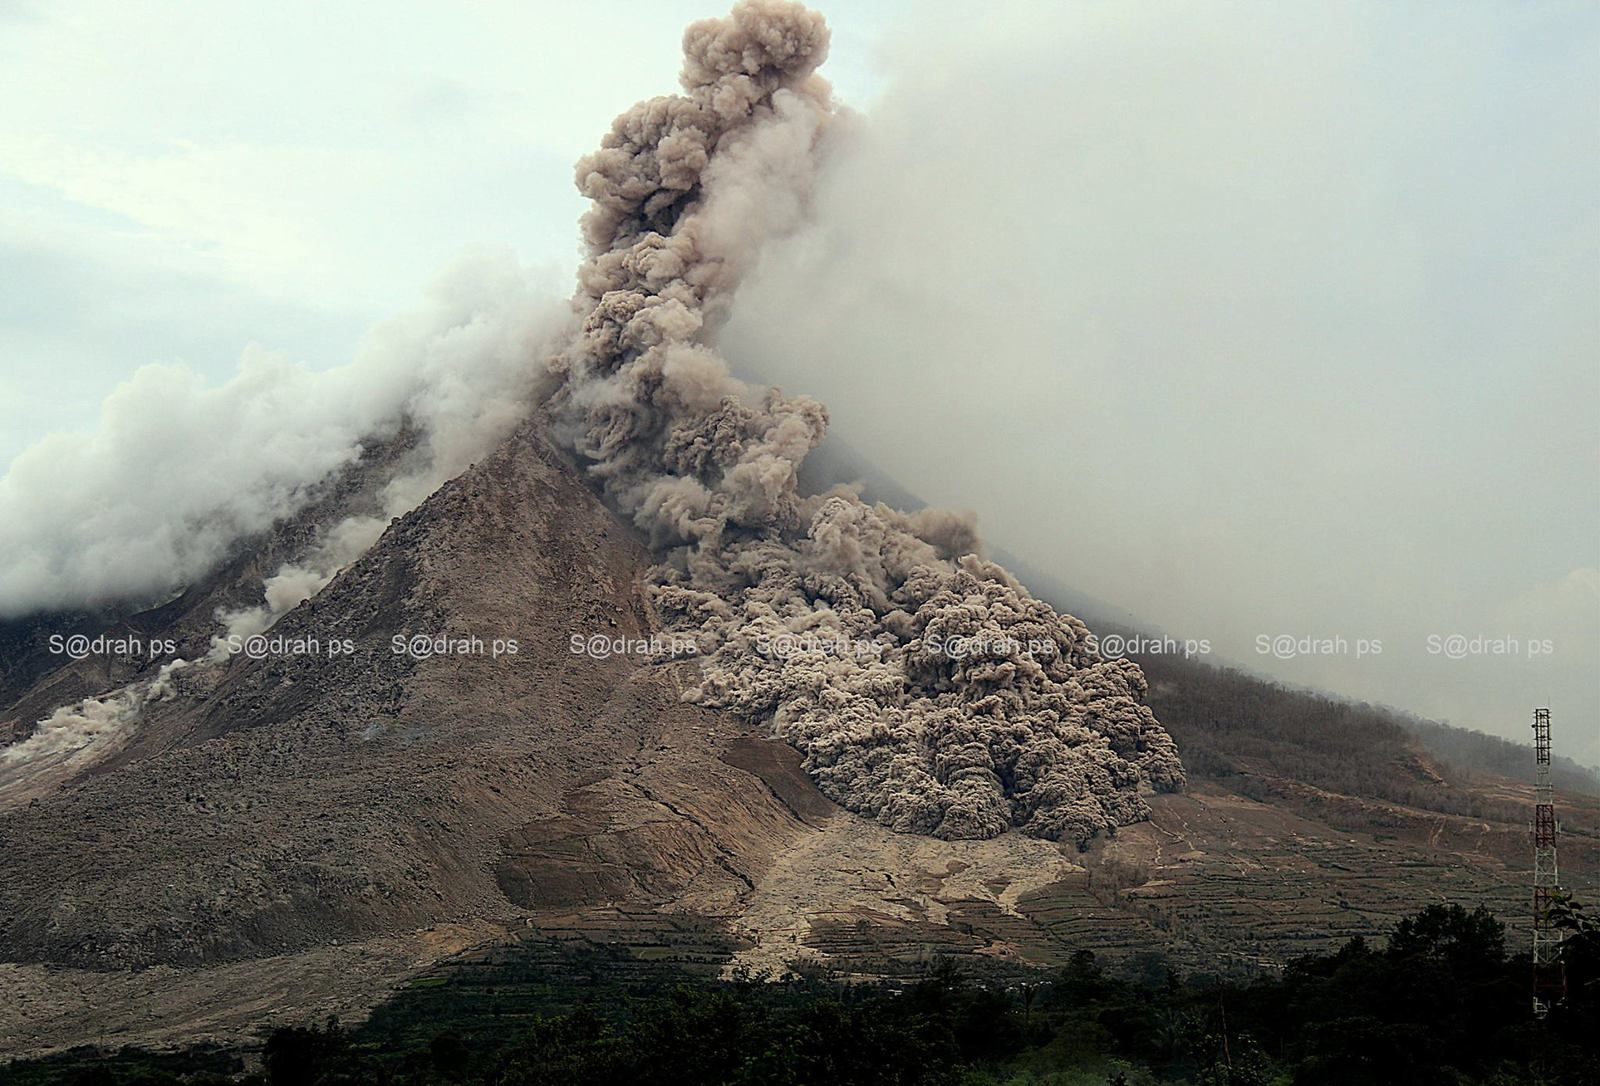 Sinabung 13.06.2015 at 17h02 & 17h03 - photos Sadrah Peranginangin